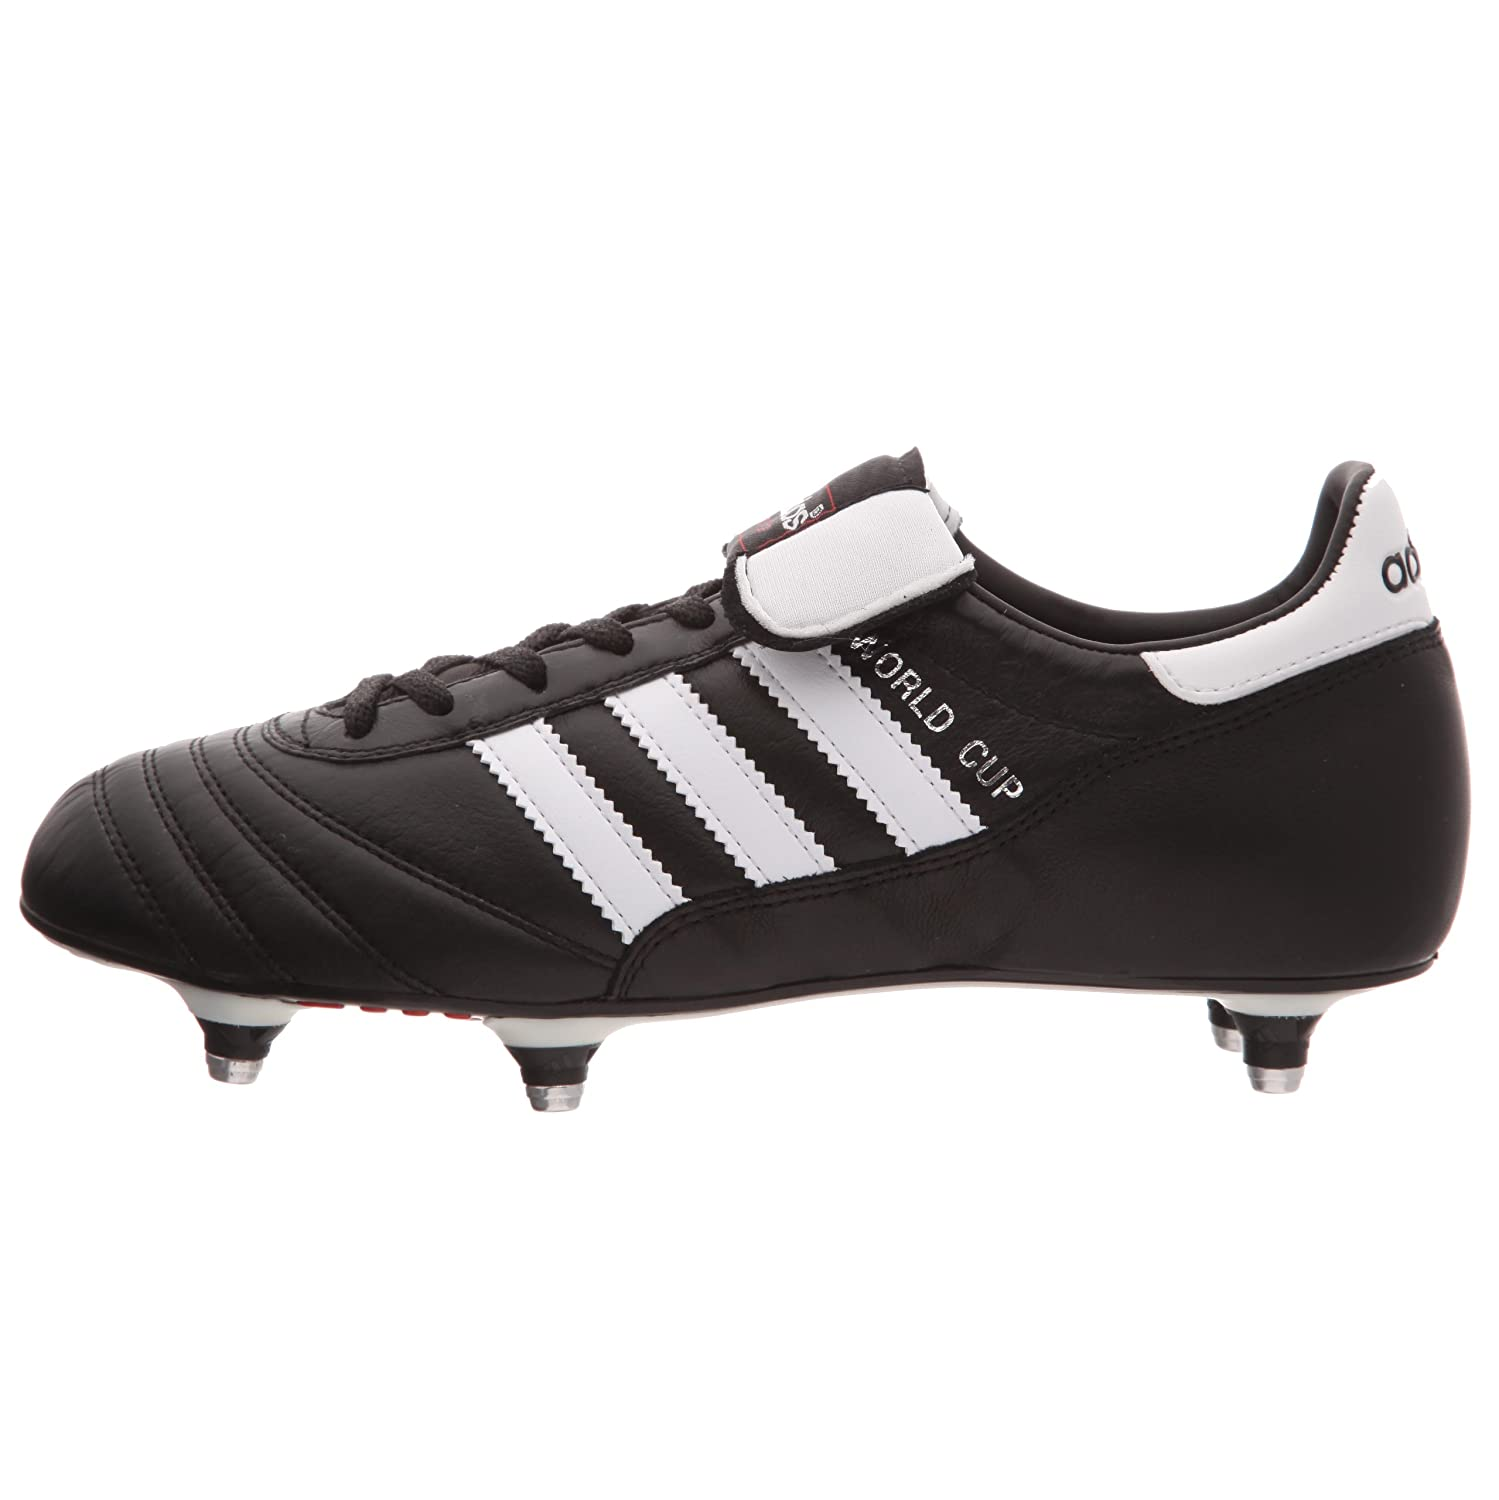 f365d23d0b5863 Amazon.com  adidas Football Shoe World Cup  Shoes